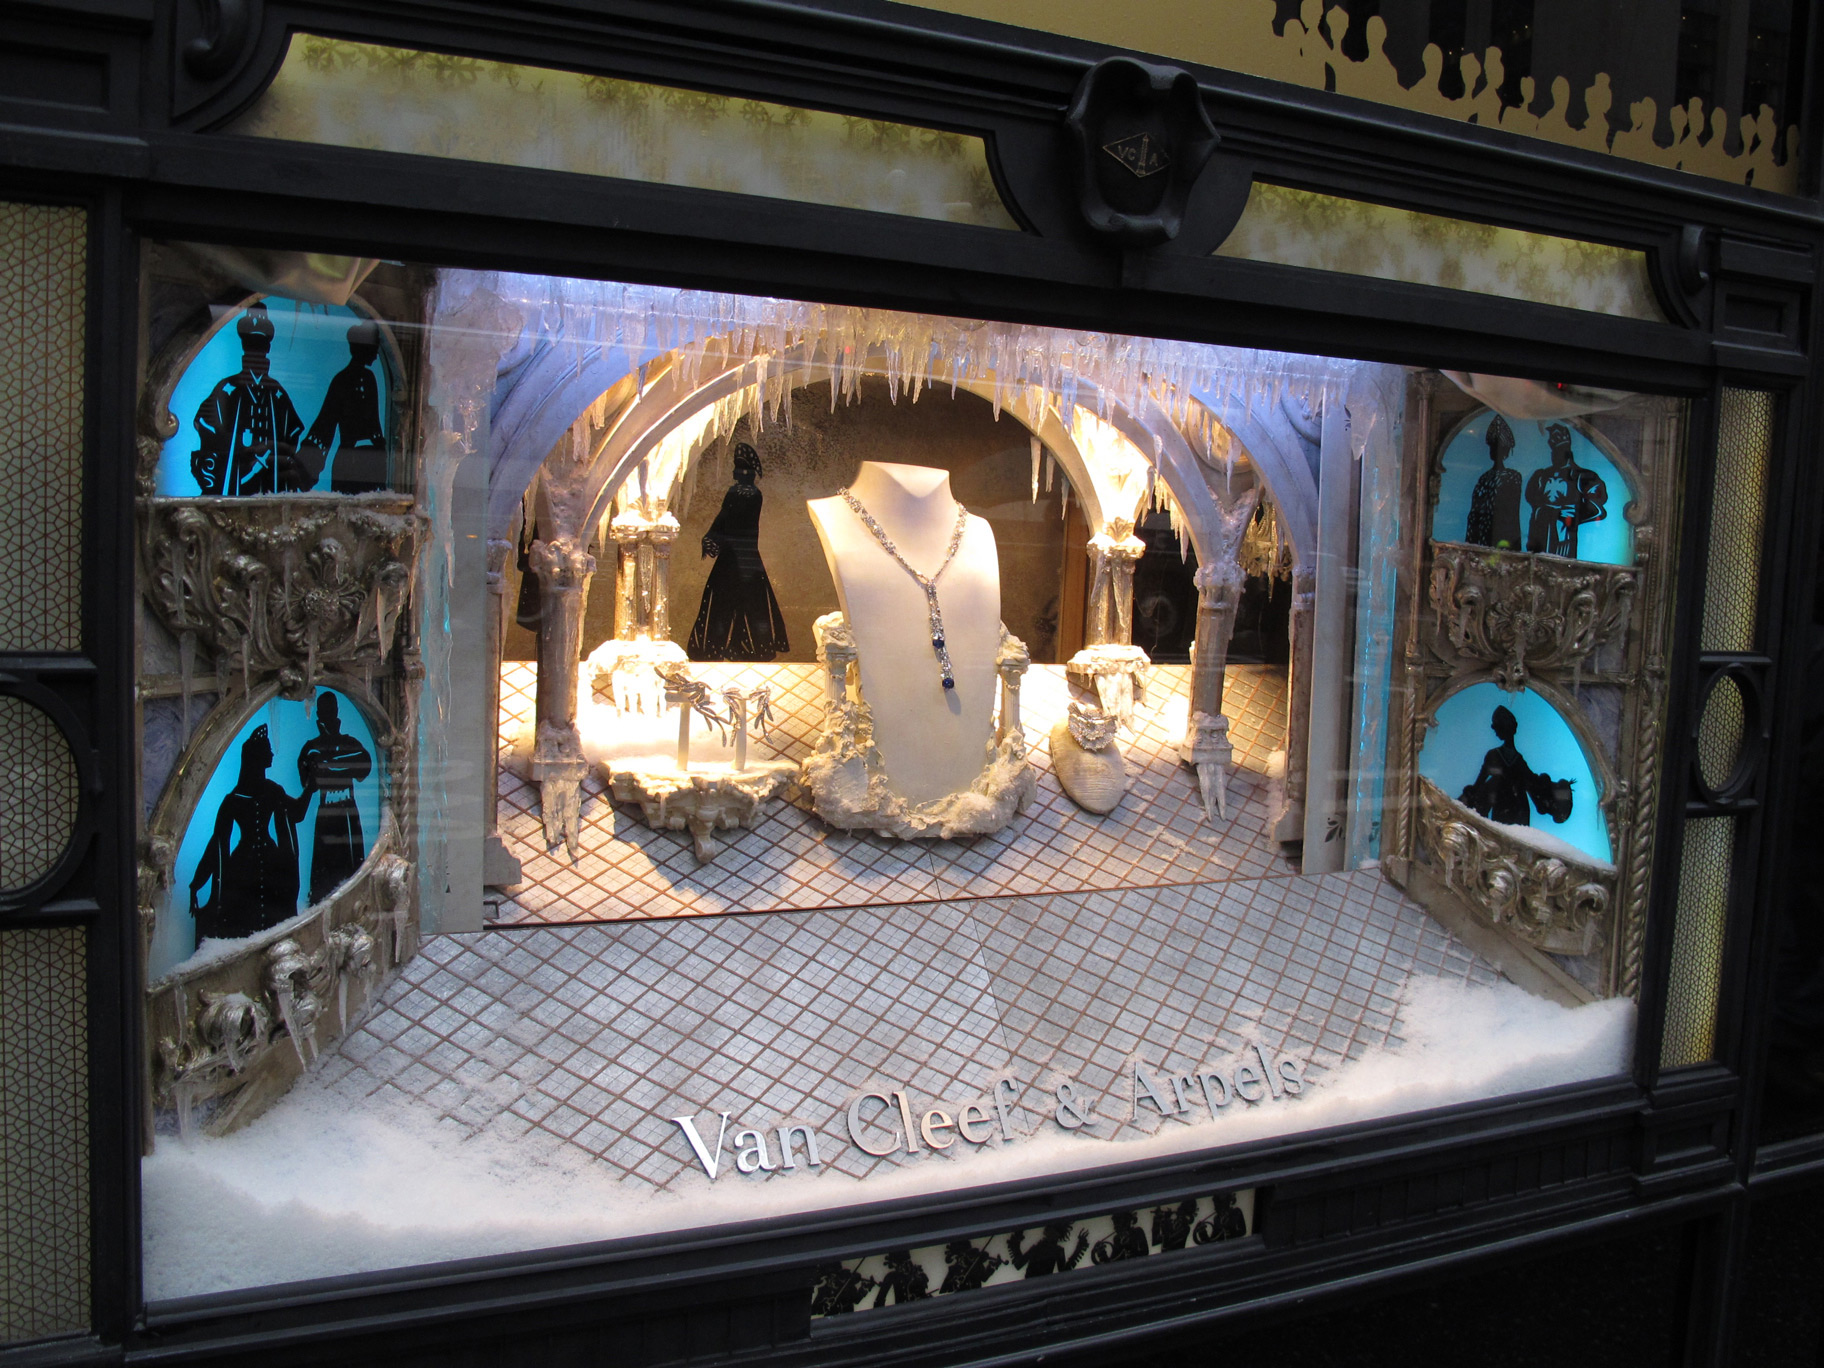 Van Cliff & Arpels has a special winter window display As we are already used, Van Cleef & Arpels iced their window display for giving a better winter style to the jewelry stand.